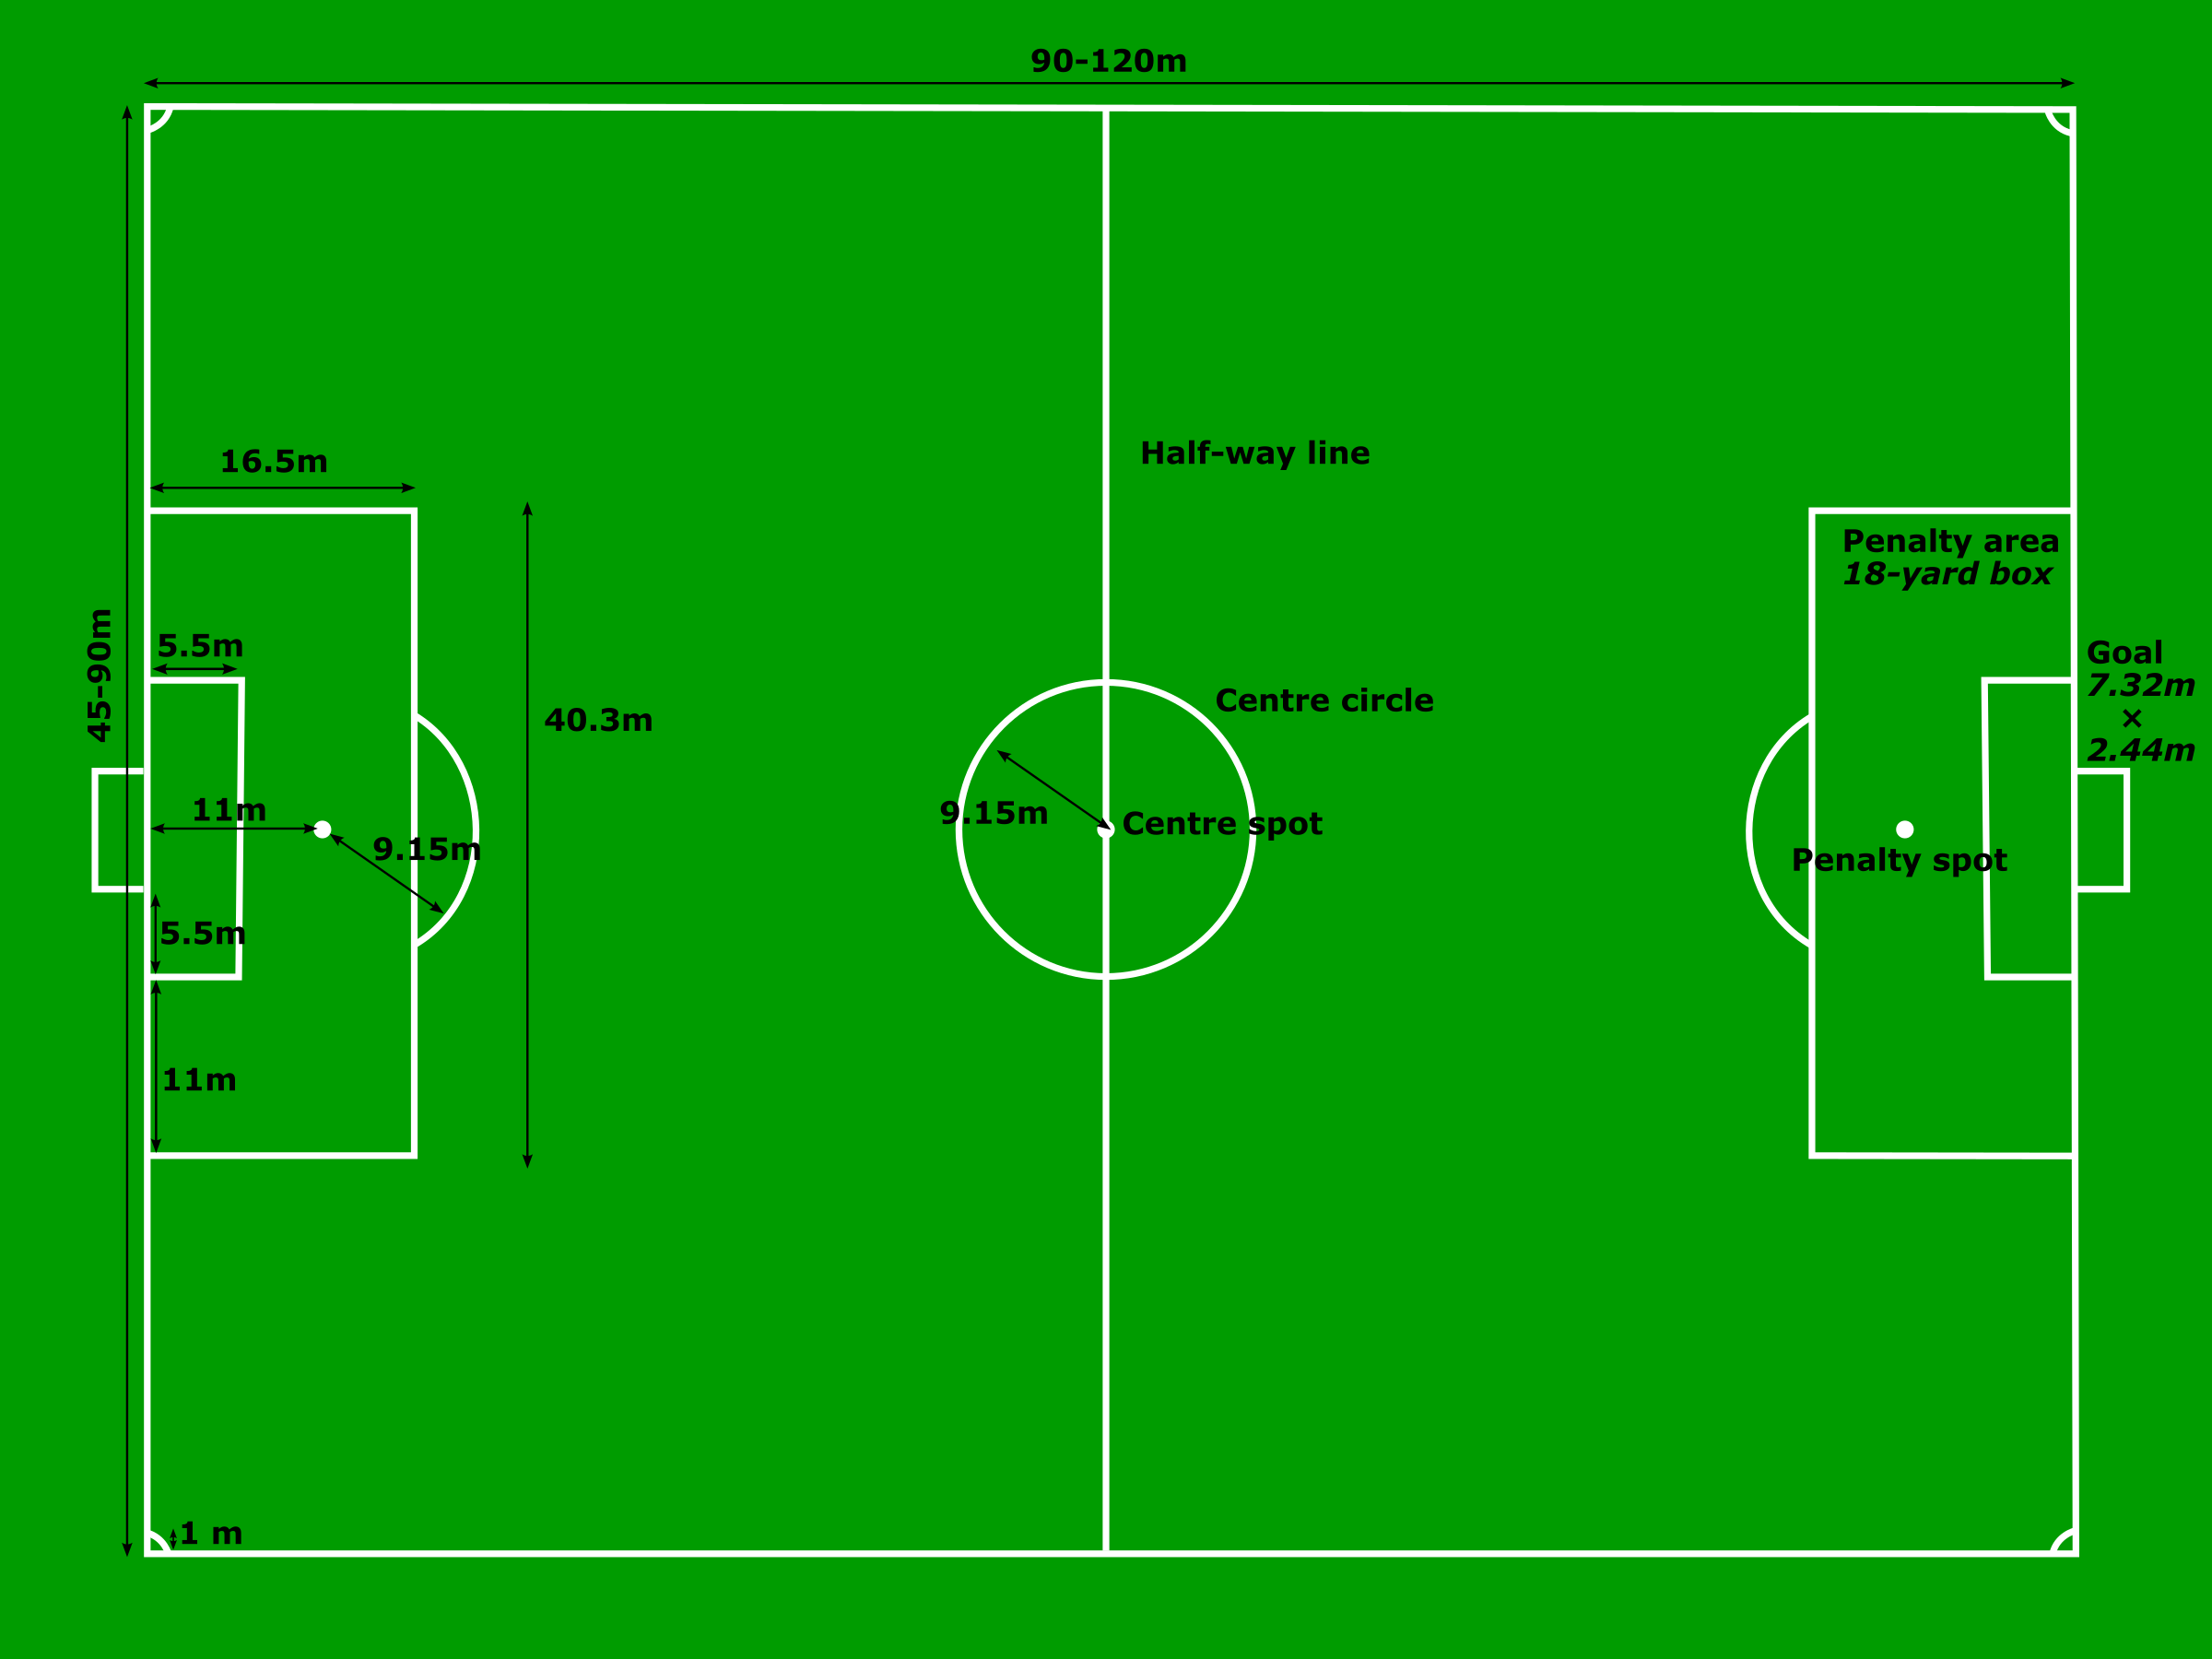 Football Pitch Measurements by focadima